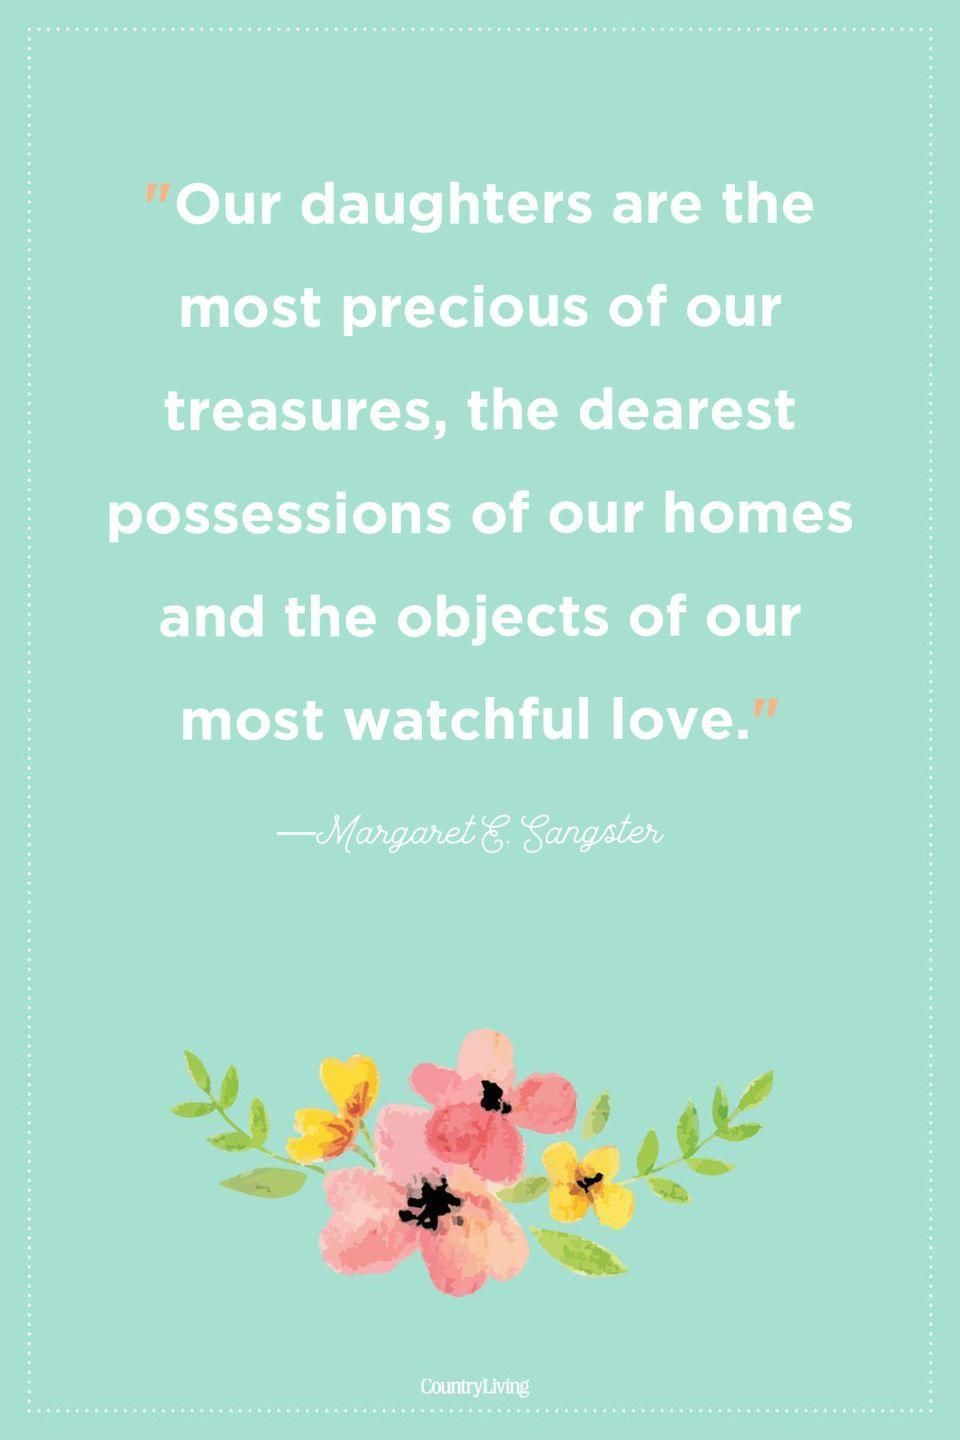 """<p>""""Our daughters are the most precious of our treasures, the dearest possessions of our homes and the objects of our most watchful love.""""</p>"""